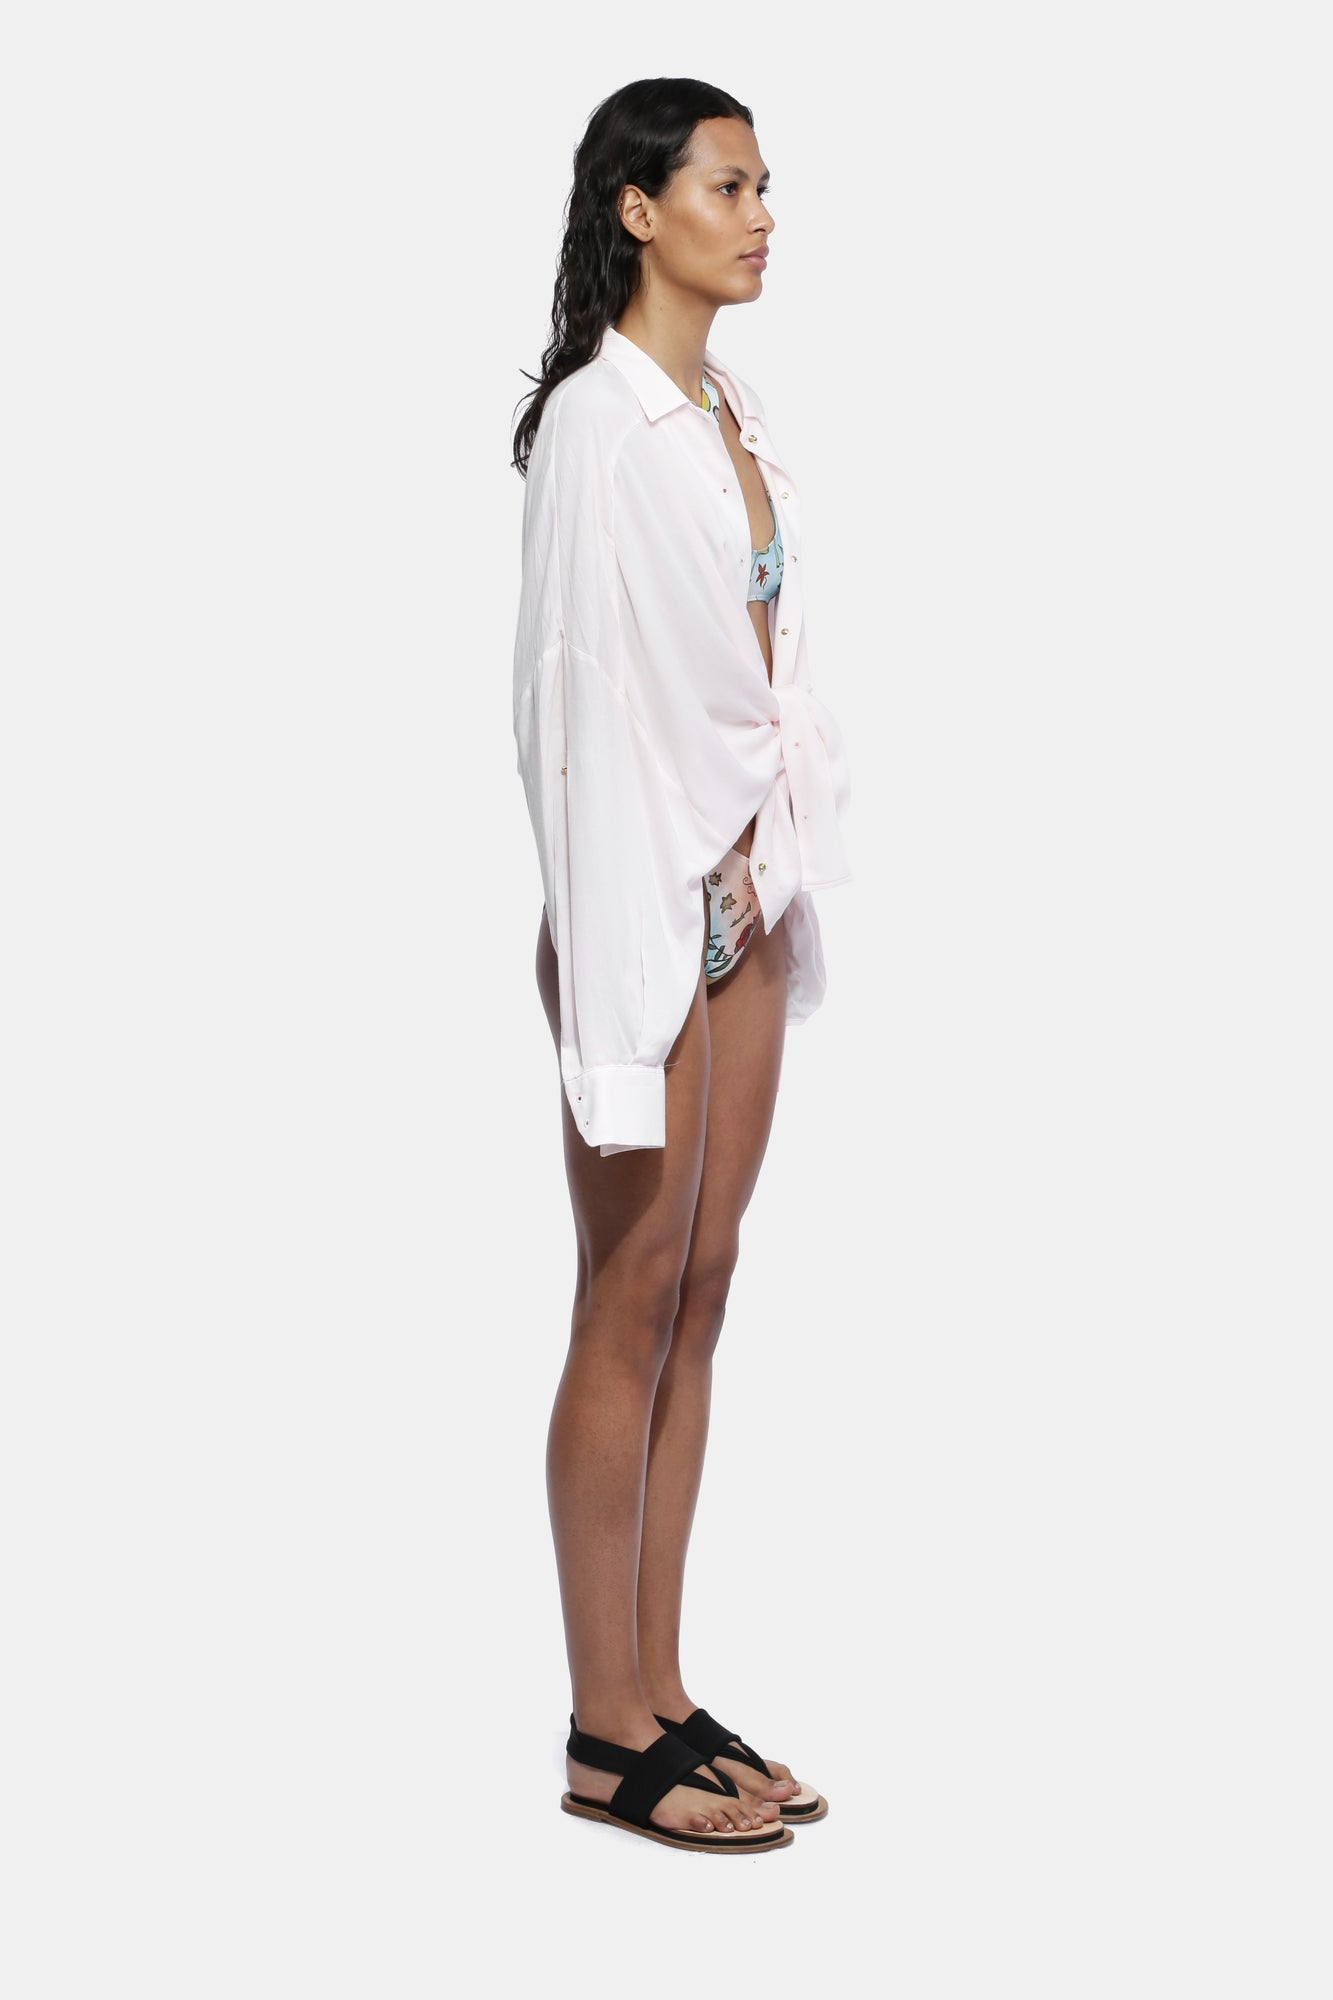 LIGHT PINK VOLUME SHIRT - Esteban Cortazar